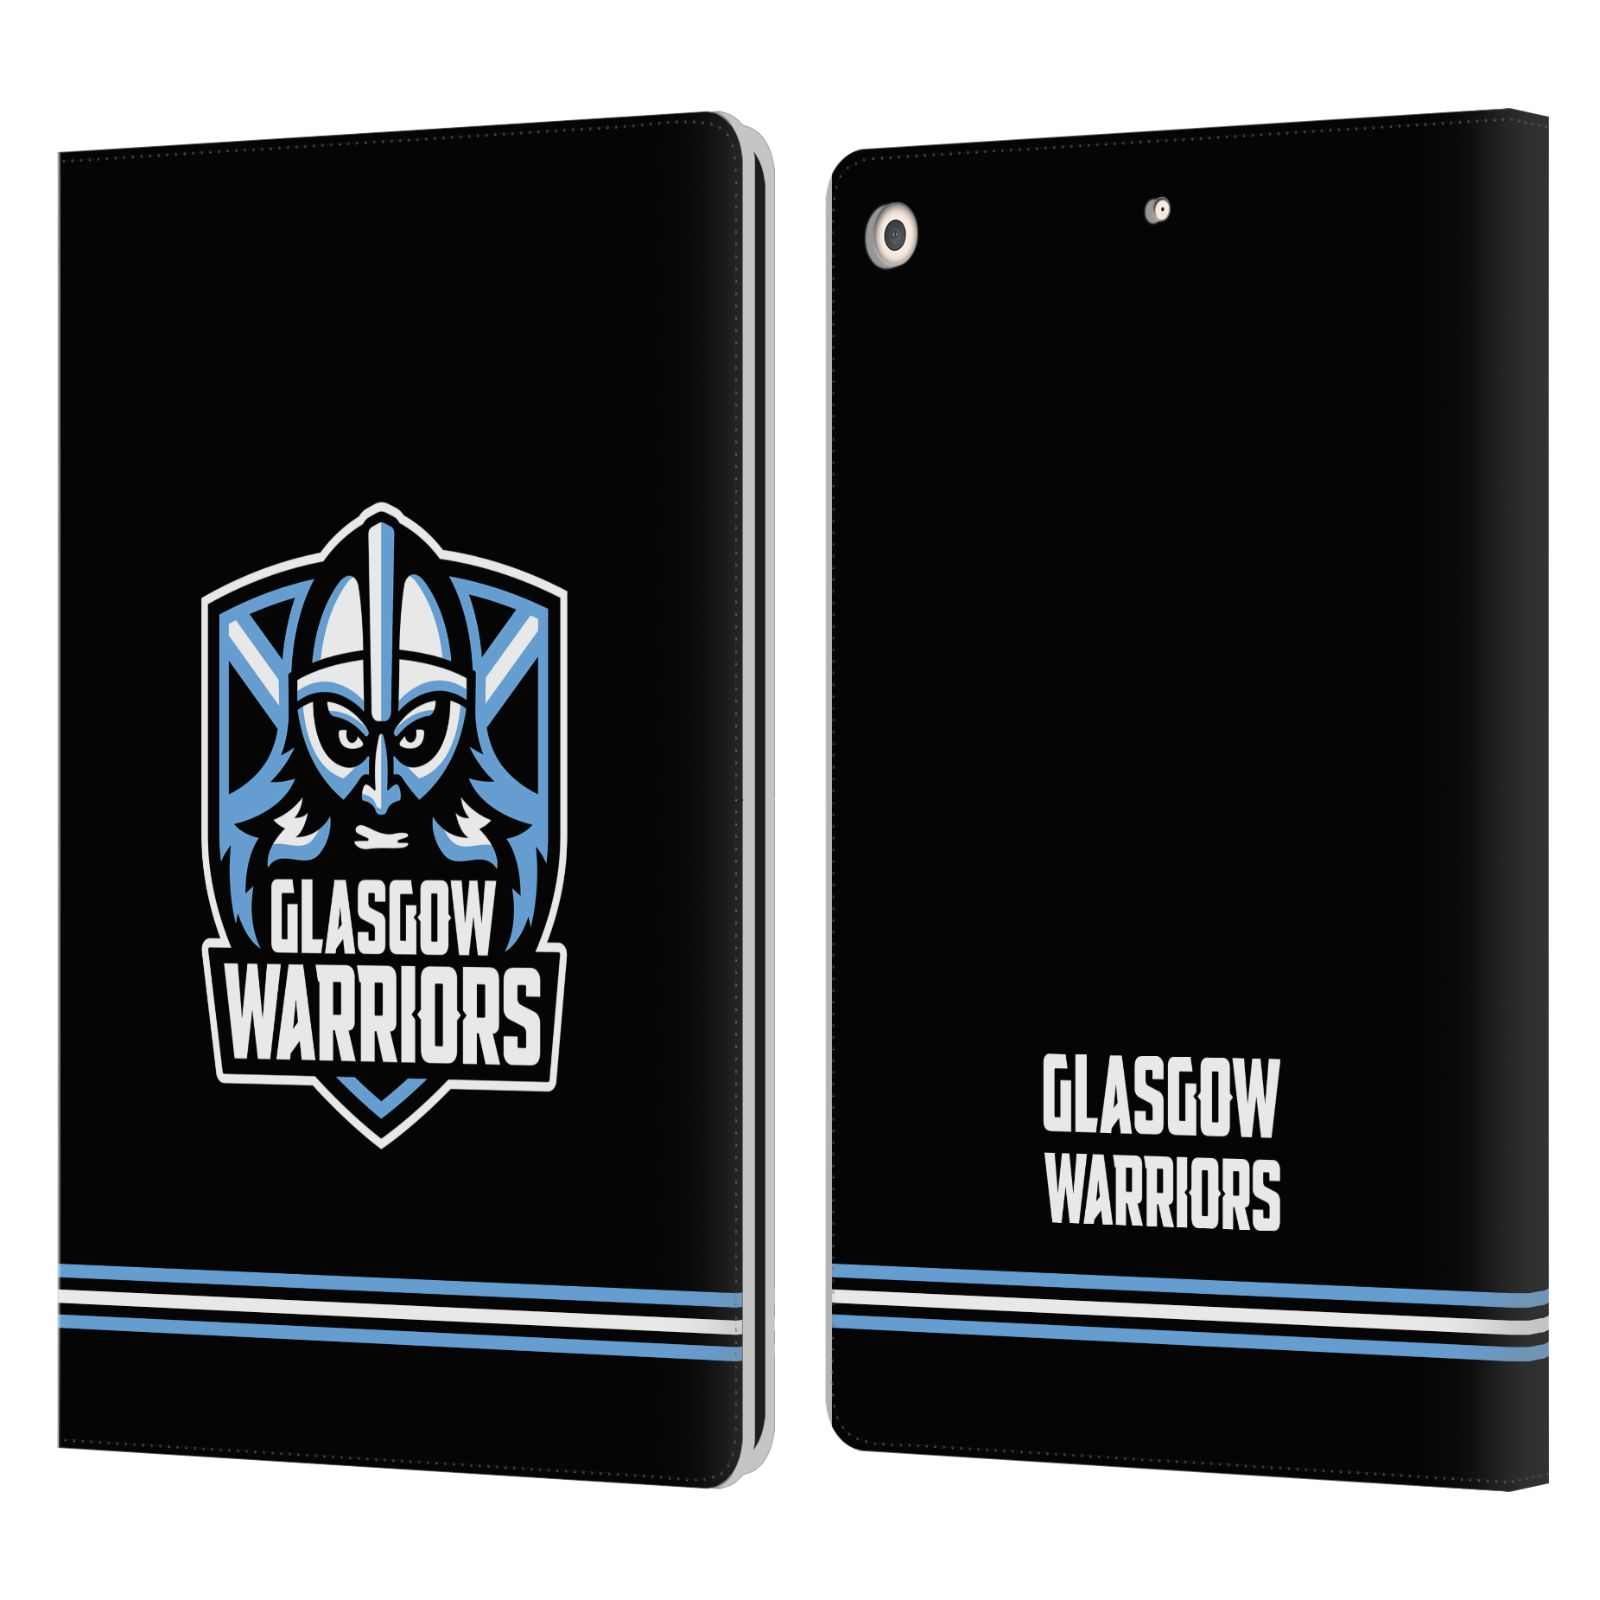 Official Glasgow Warriors 2019/20 Logo Art Stripes Black Leather Book Wallet Case For Apple iPad 10.2 (2019)